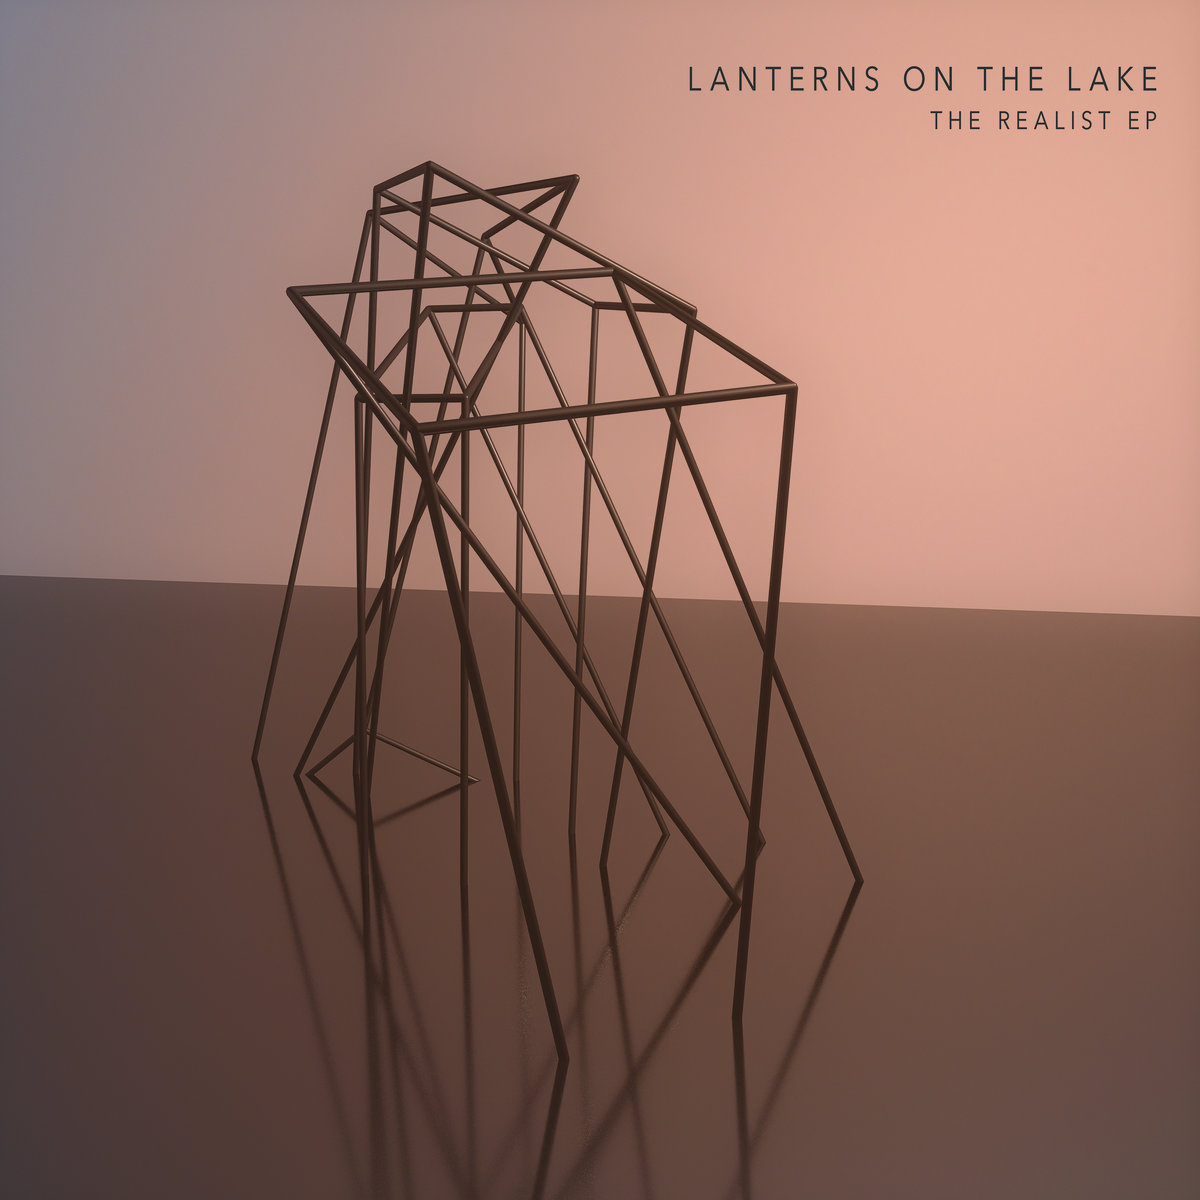 The Realist EP - Lanterns on the Lake